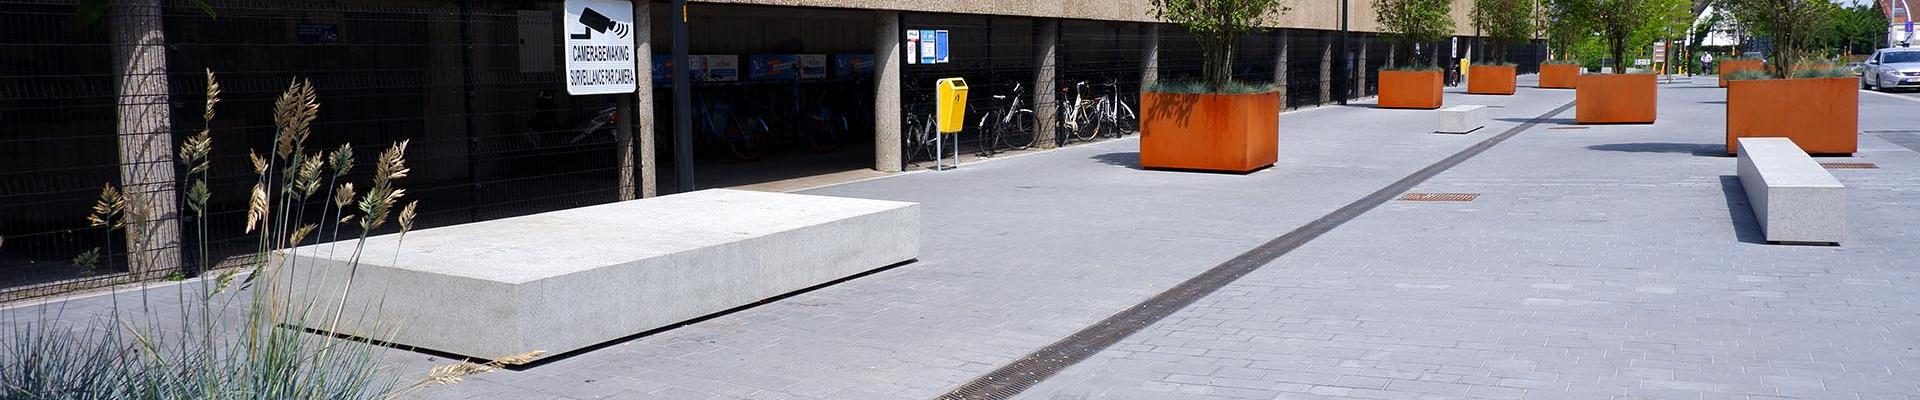 URBASTYLE, innovation in the field of concrete